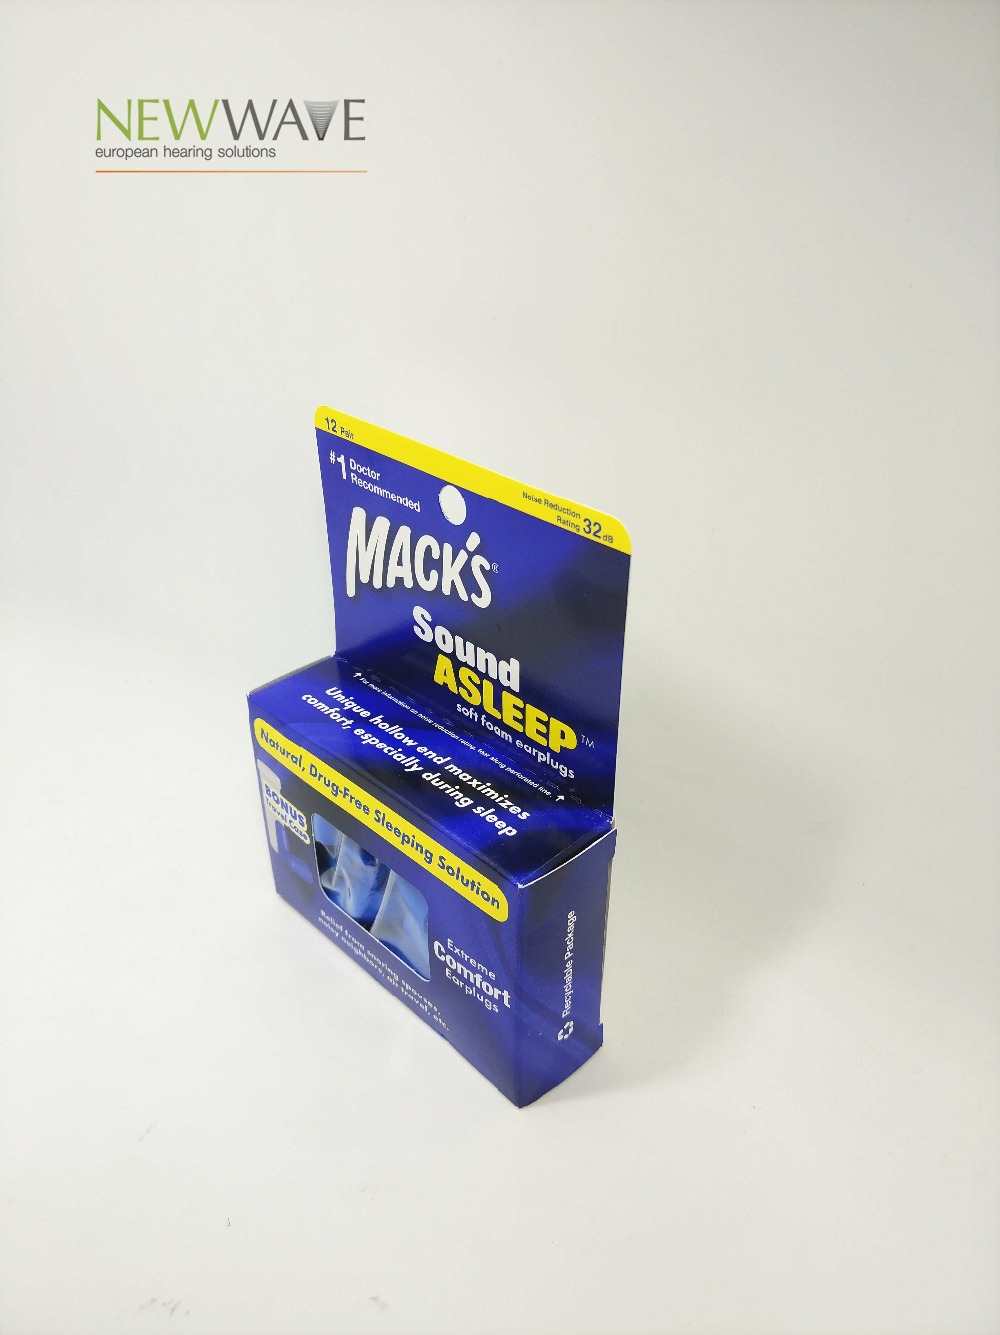 Mack's 12 pairs foam earplugs noise reduction hearing protection